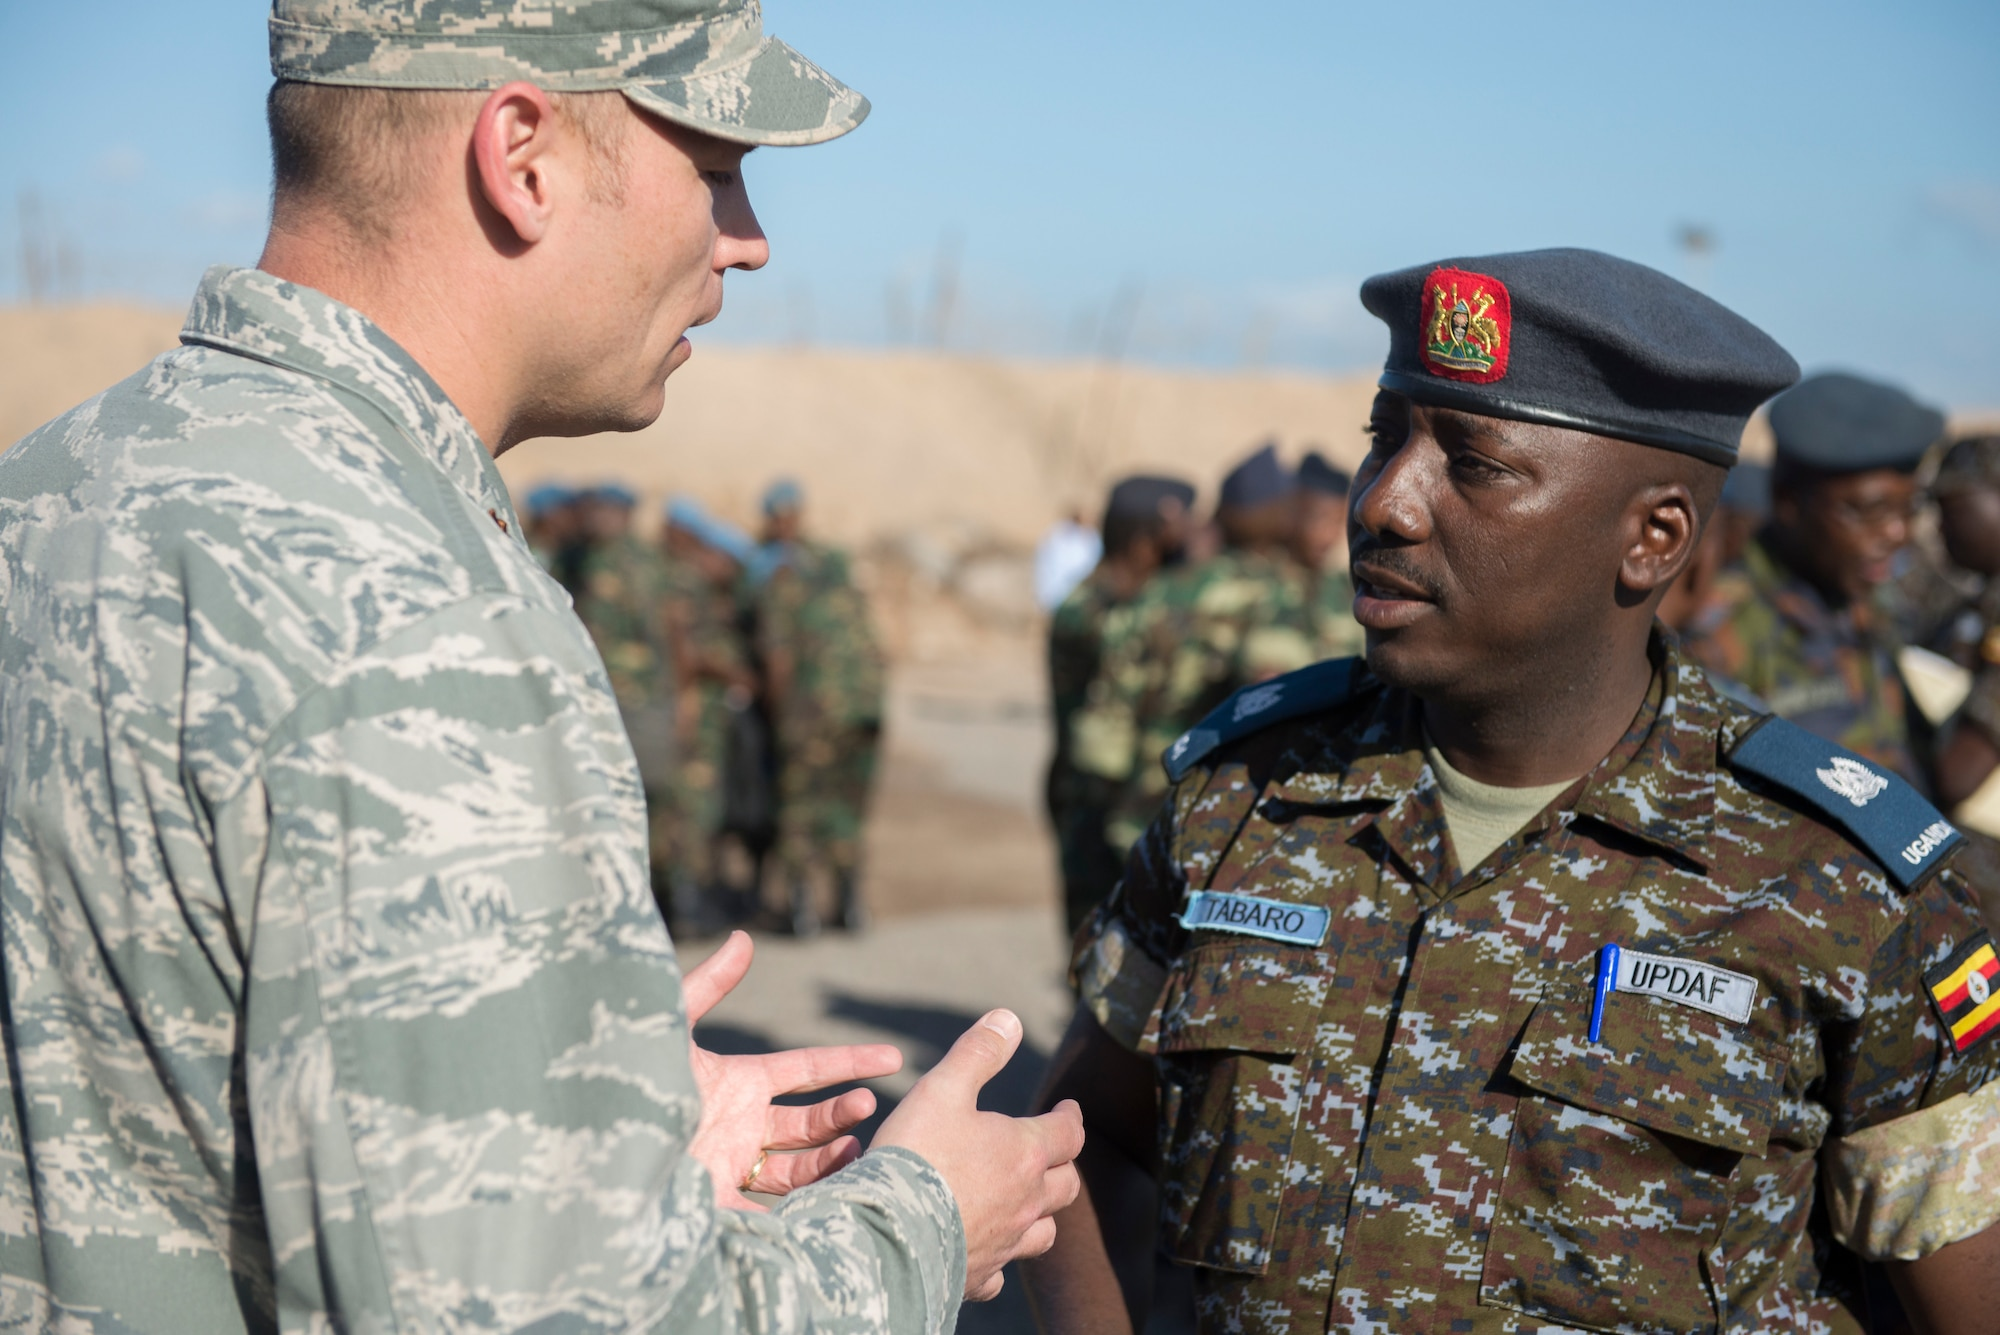 U.S. Air Force Maj. Dirk Casson, left, speaks with Ugandan air force Maj. Tabaro Kinconco during African Partnership Flight-Djibouti Feb. 7, 2015, at Djibouti Air Base, Djibouti. The goal of the event was to discuss possible best practices of the neighboring nations and strengthen relationships among Airmen to improve regional security. (U.S. Air Force photo/Tech. Sgt. Benjamin Wilson)